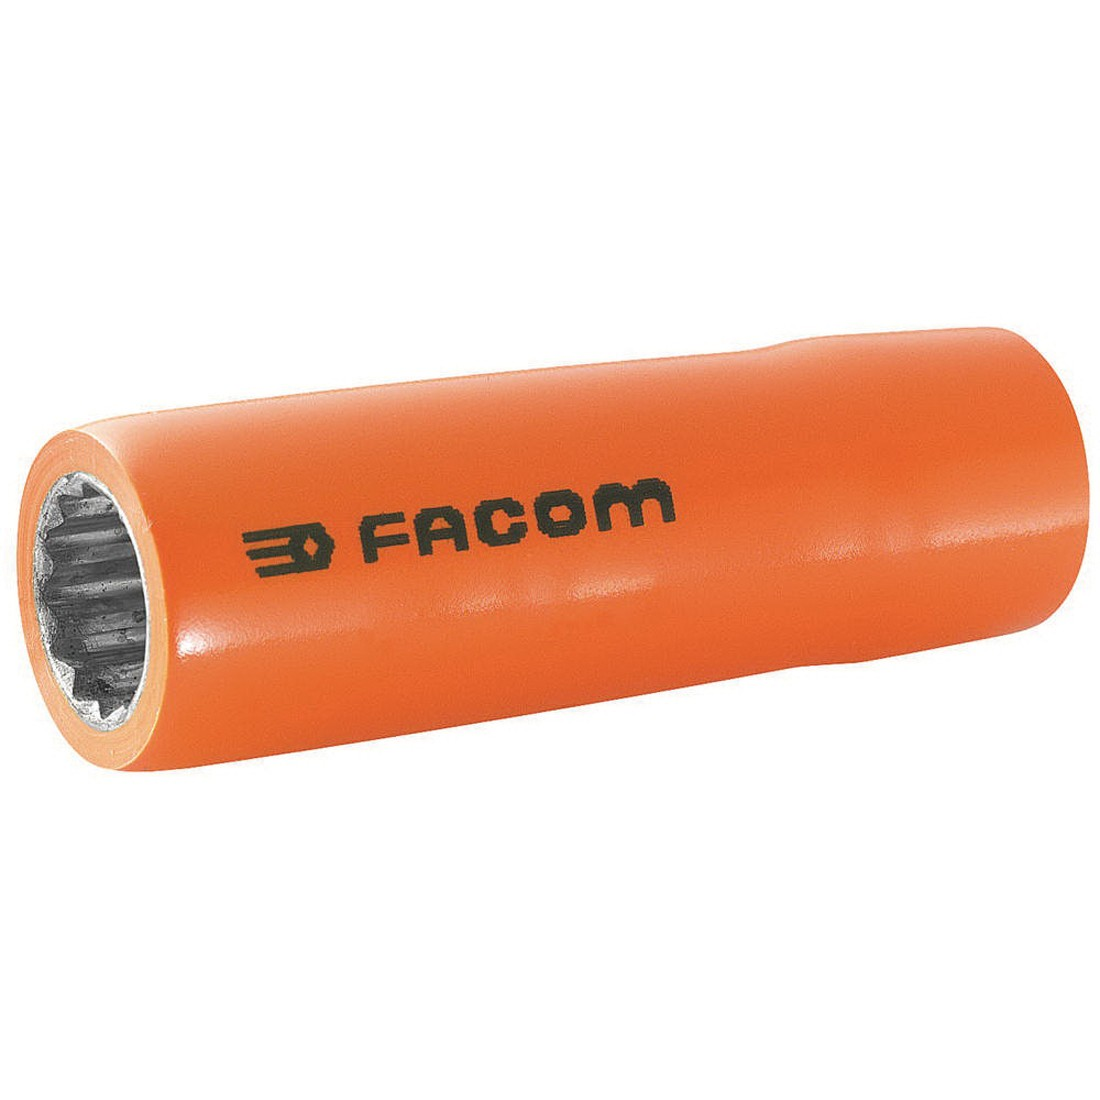 Facom® FM-S.16LAVSE Metric Deep Length Insulated Socket, 12 Point Socket, 1/2 in Square Drive, 16 mm Socket